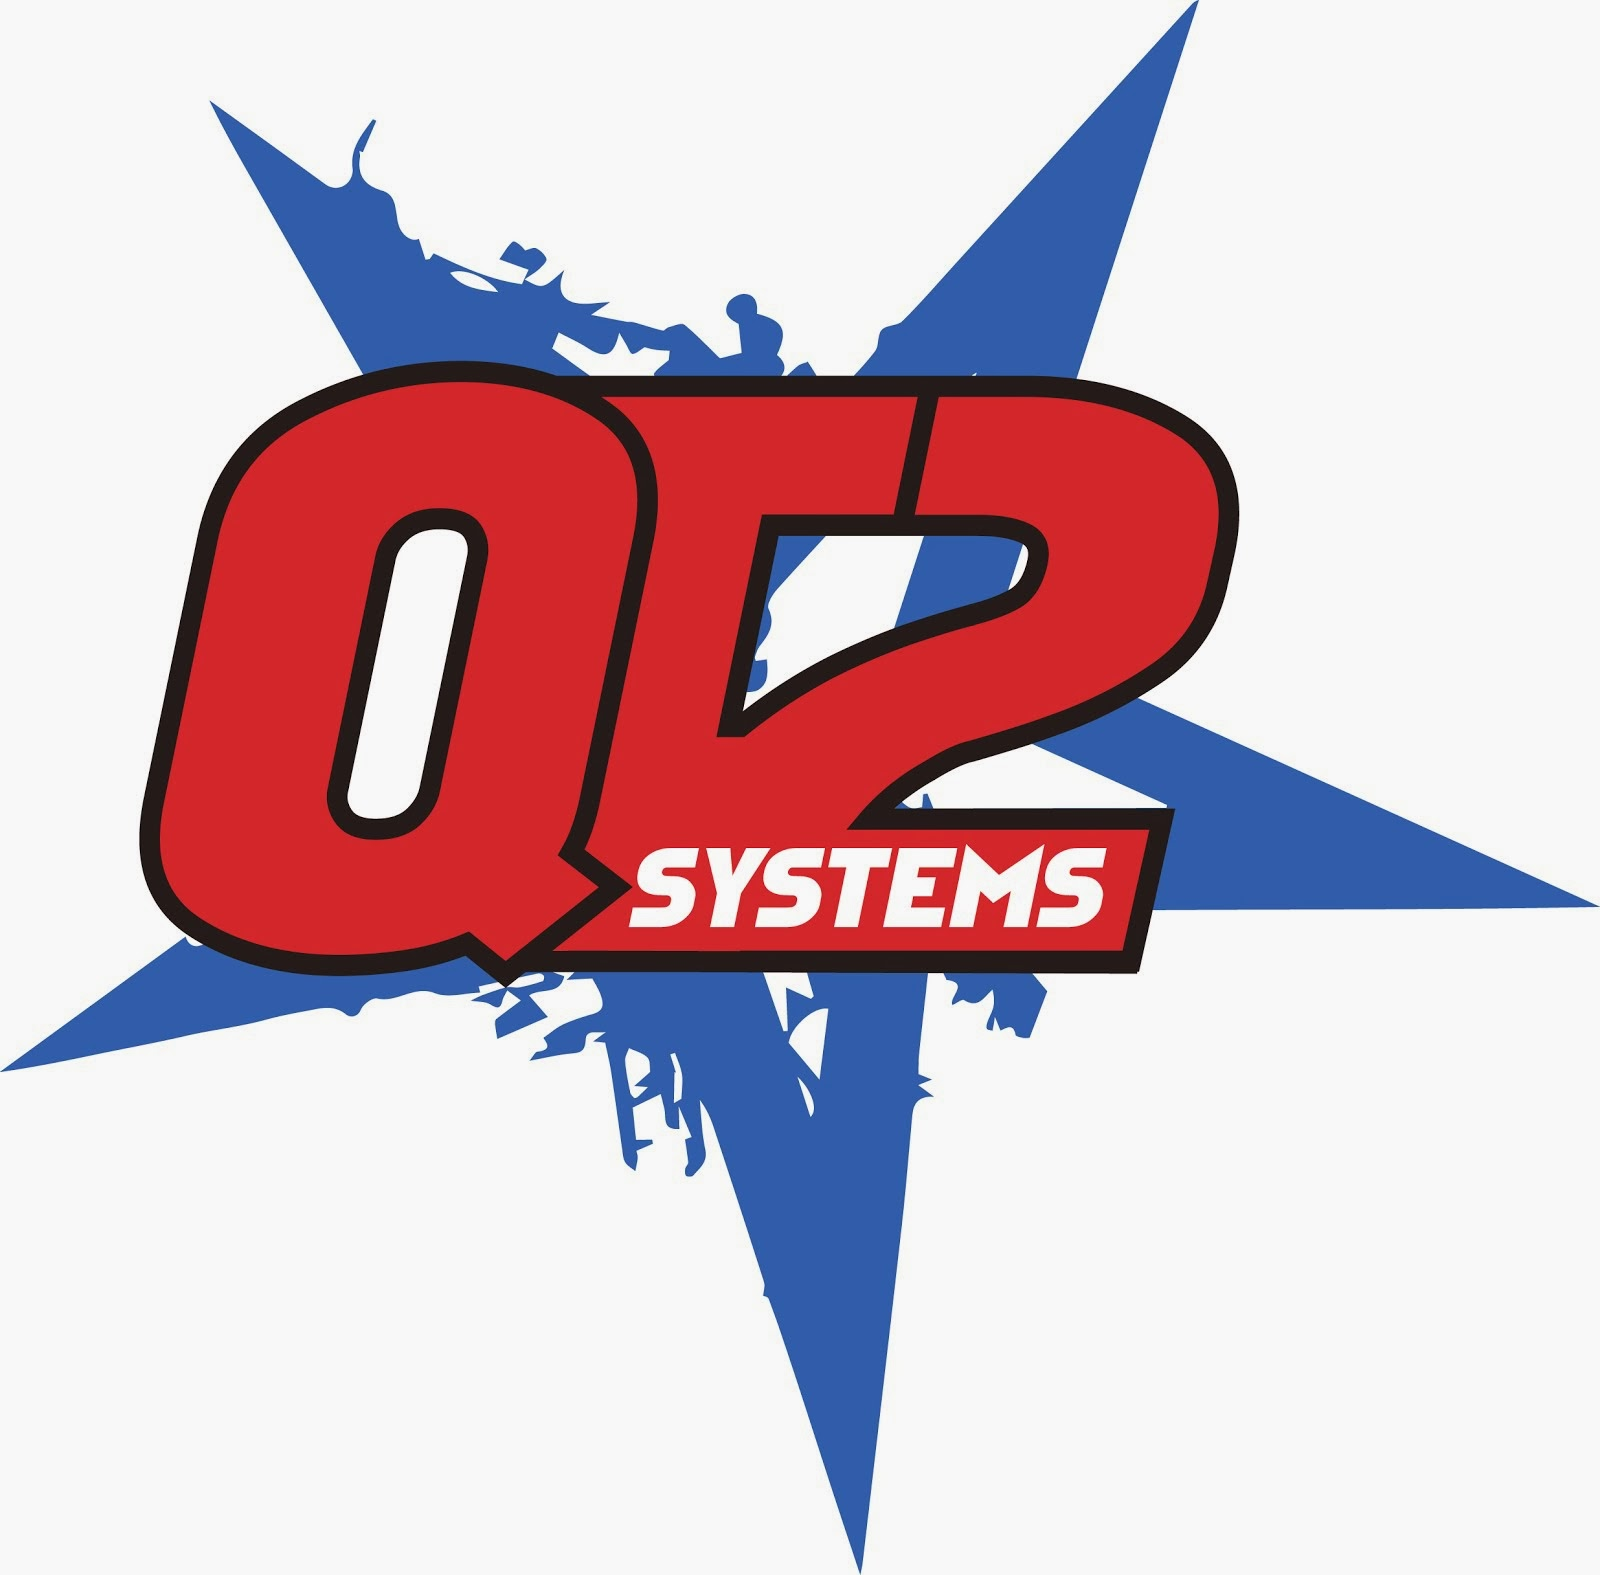 Coached by QT2 Systems